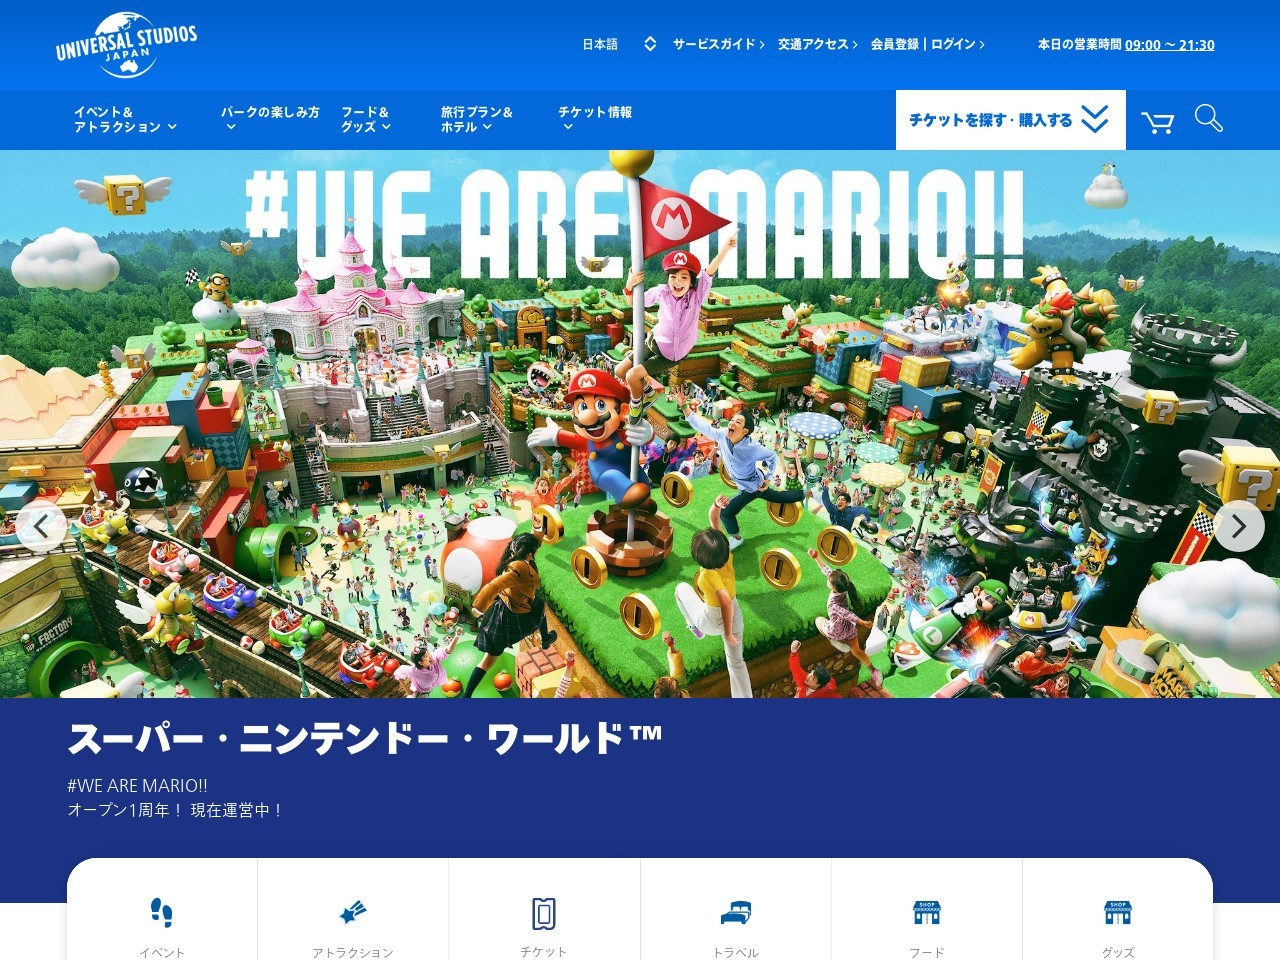 http://www.usj.co.jp/halloween2015/